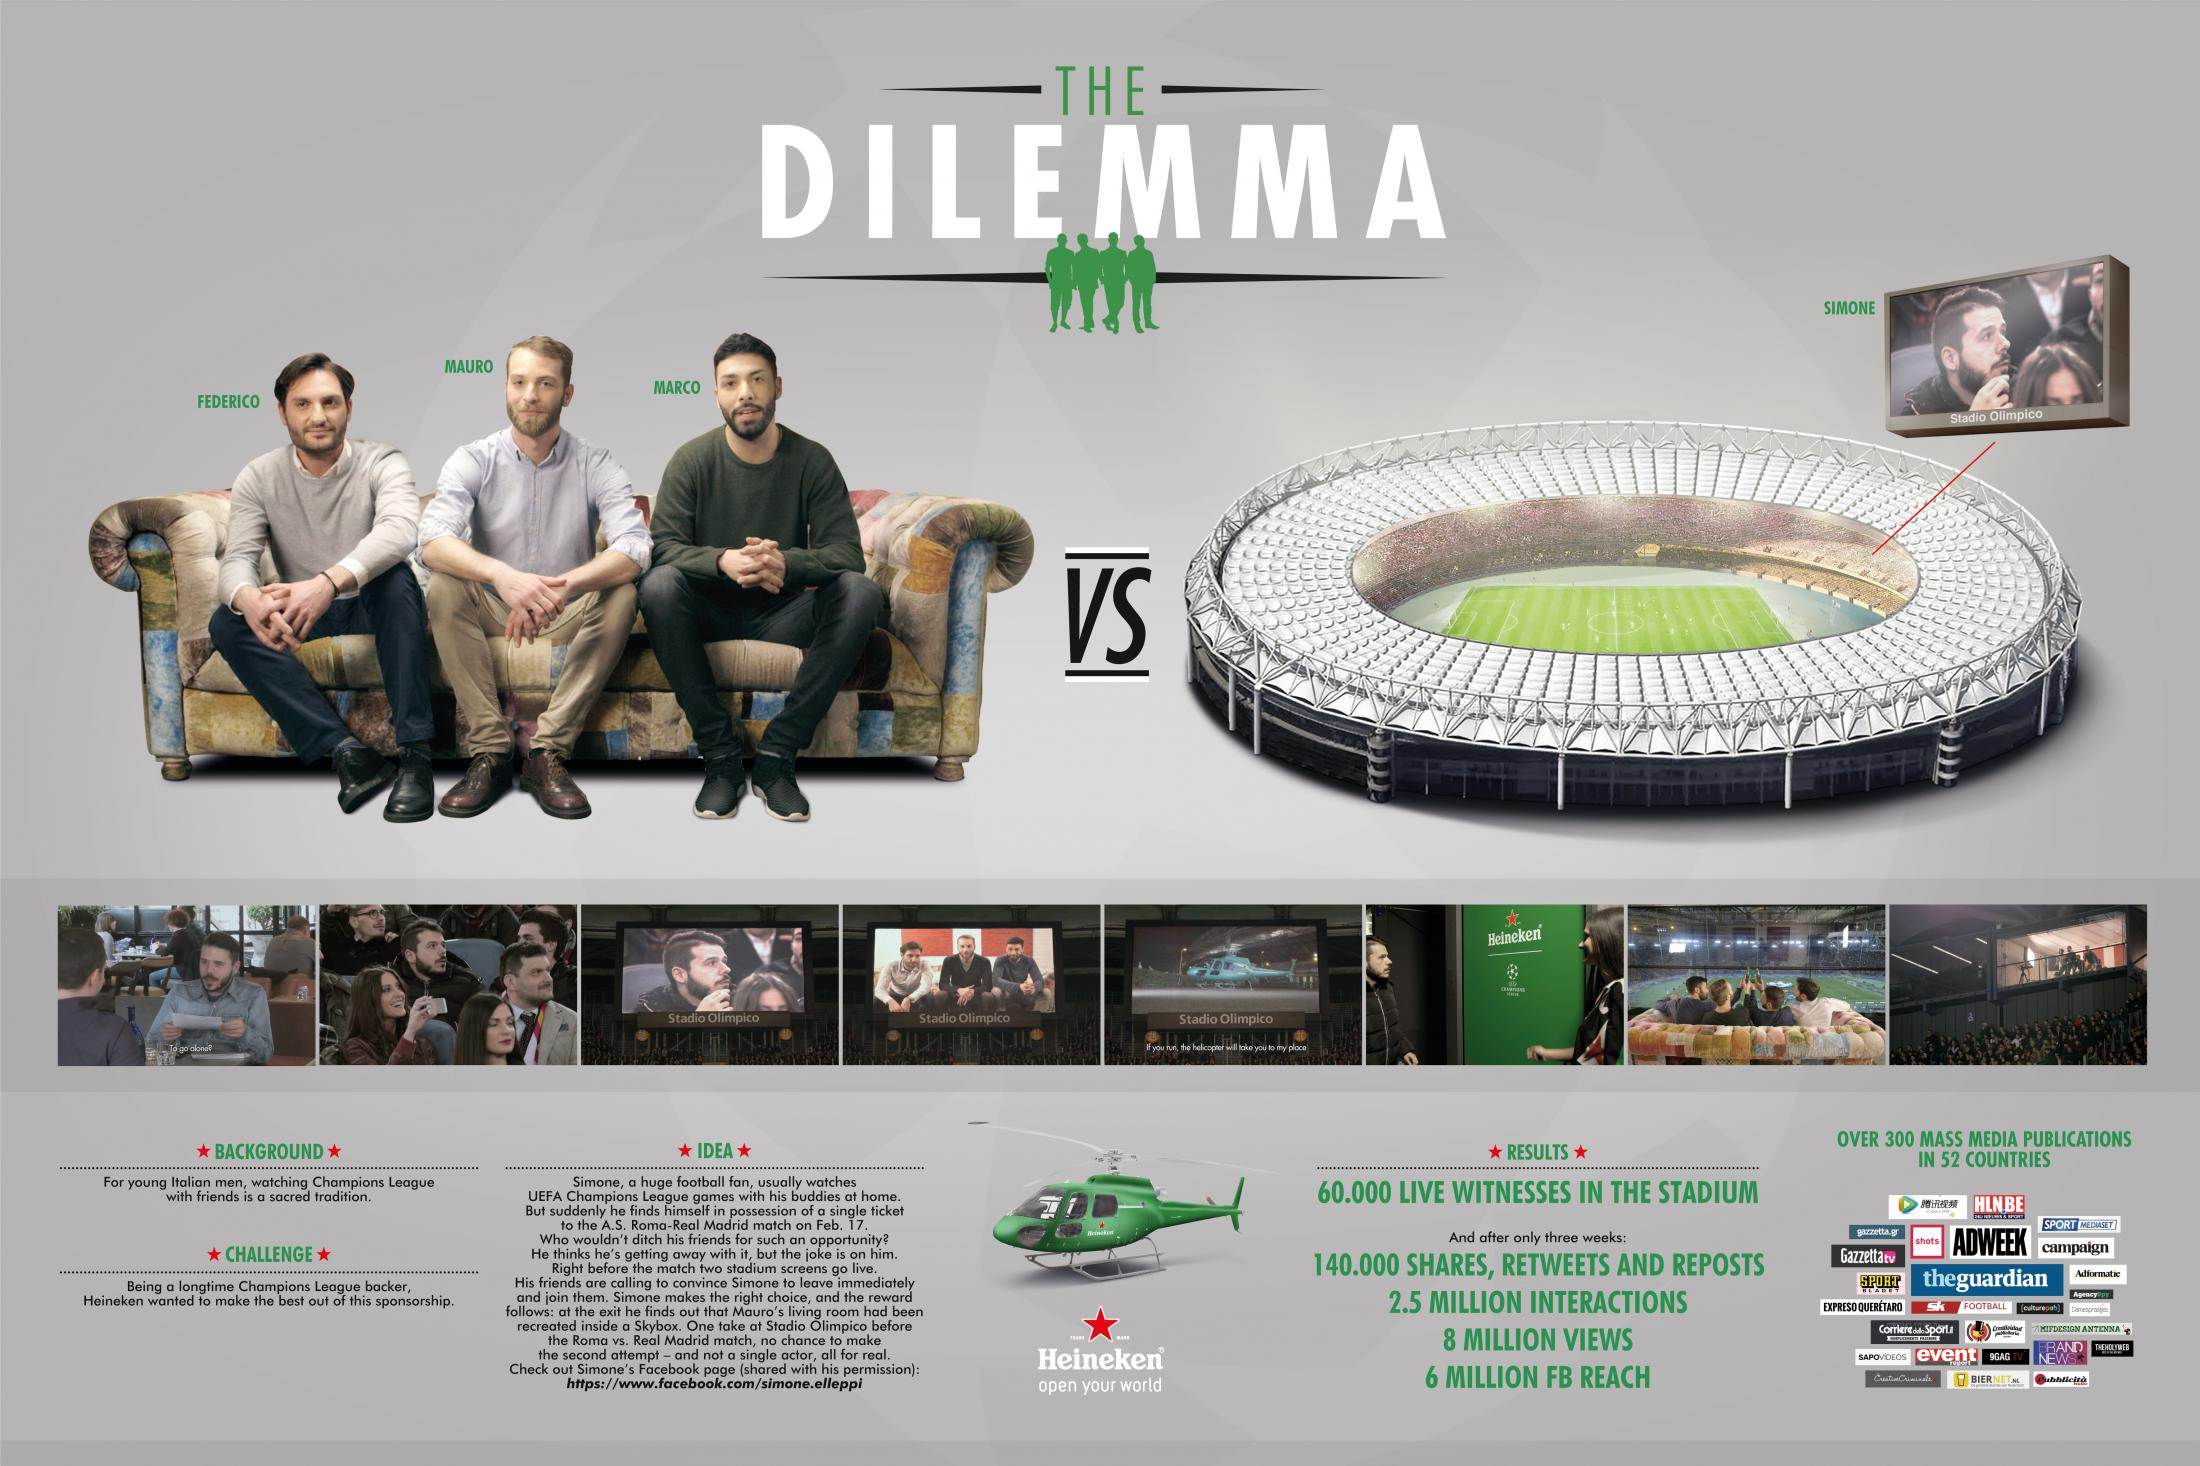 Image Media for The Dilemma